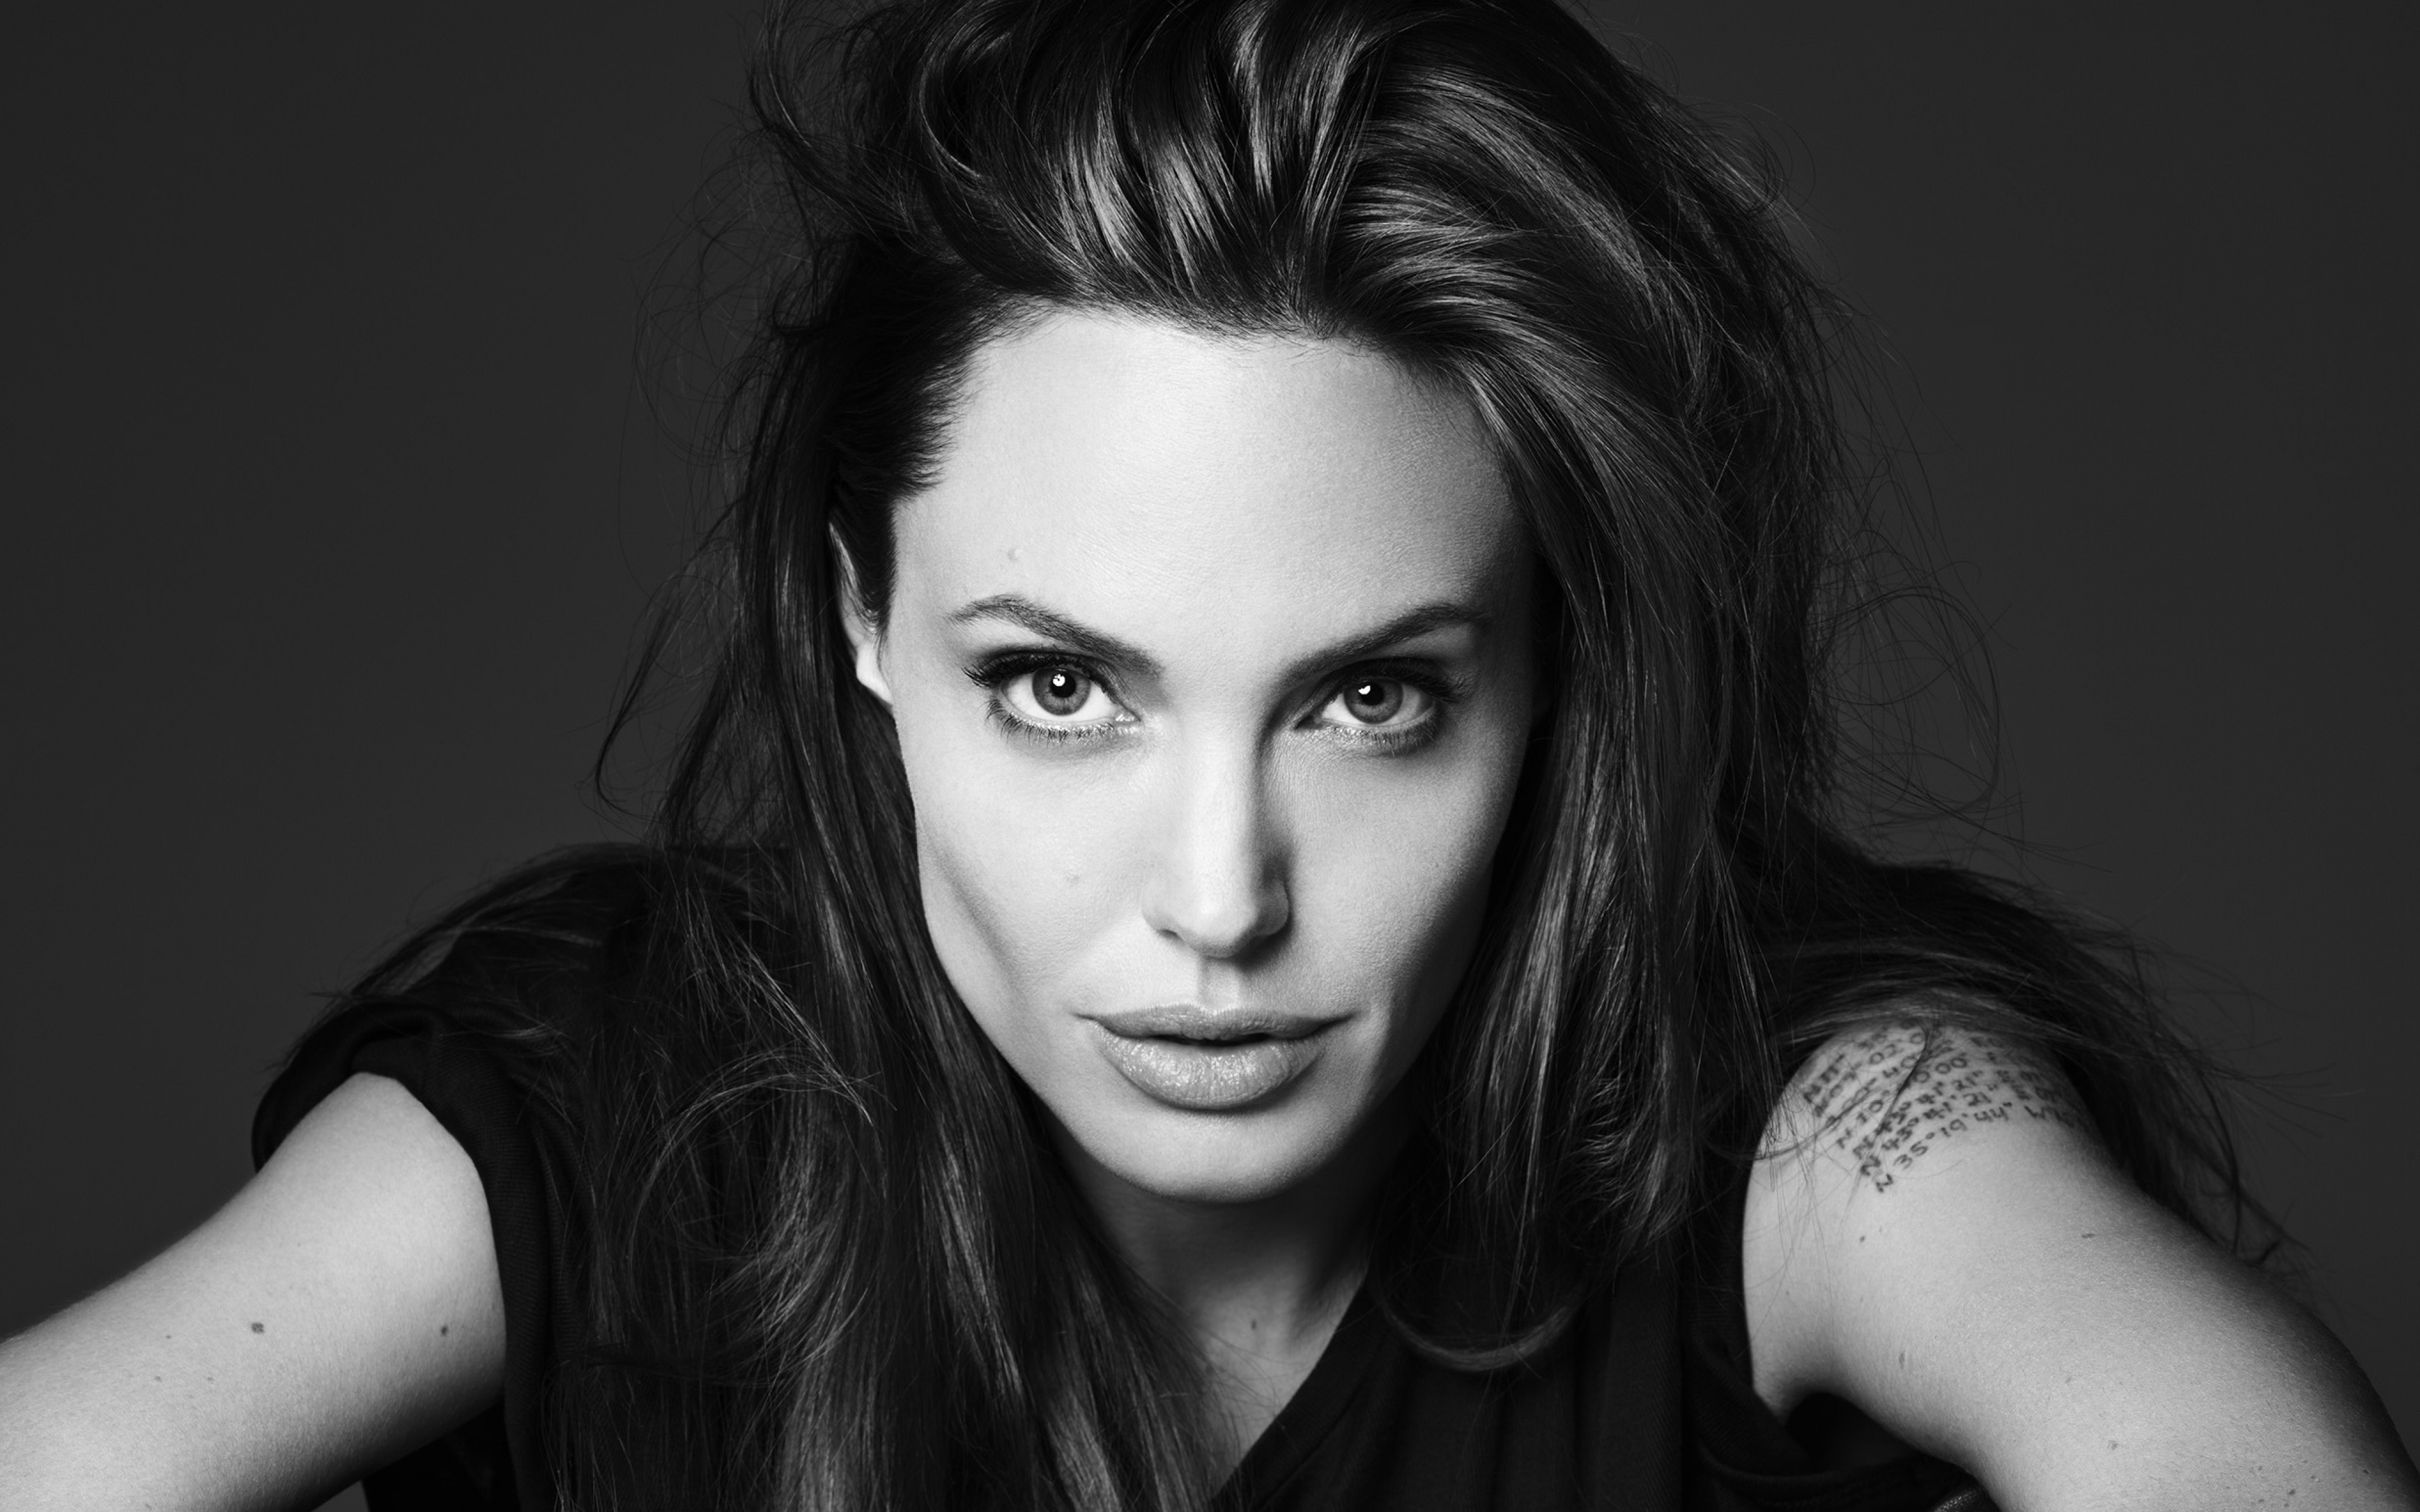 1366x768 angelina jolie 1366x768 resolution hd 4k wallpapers, images